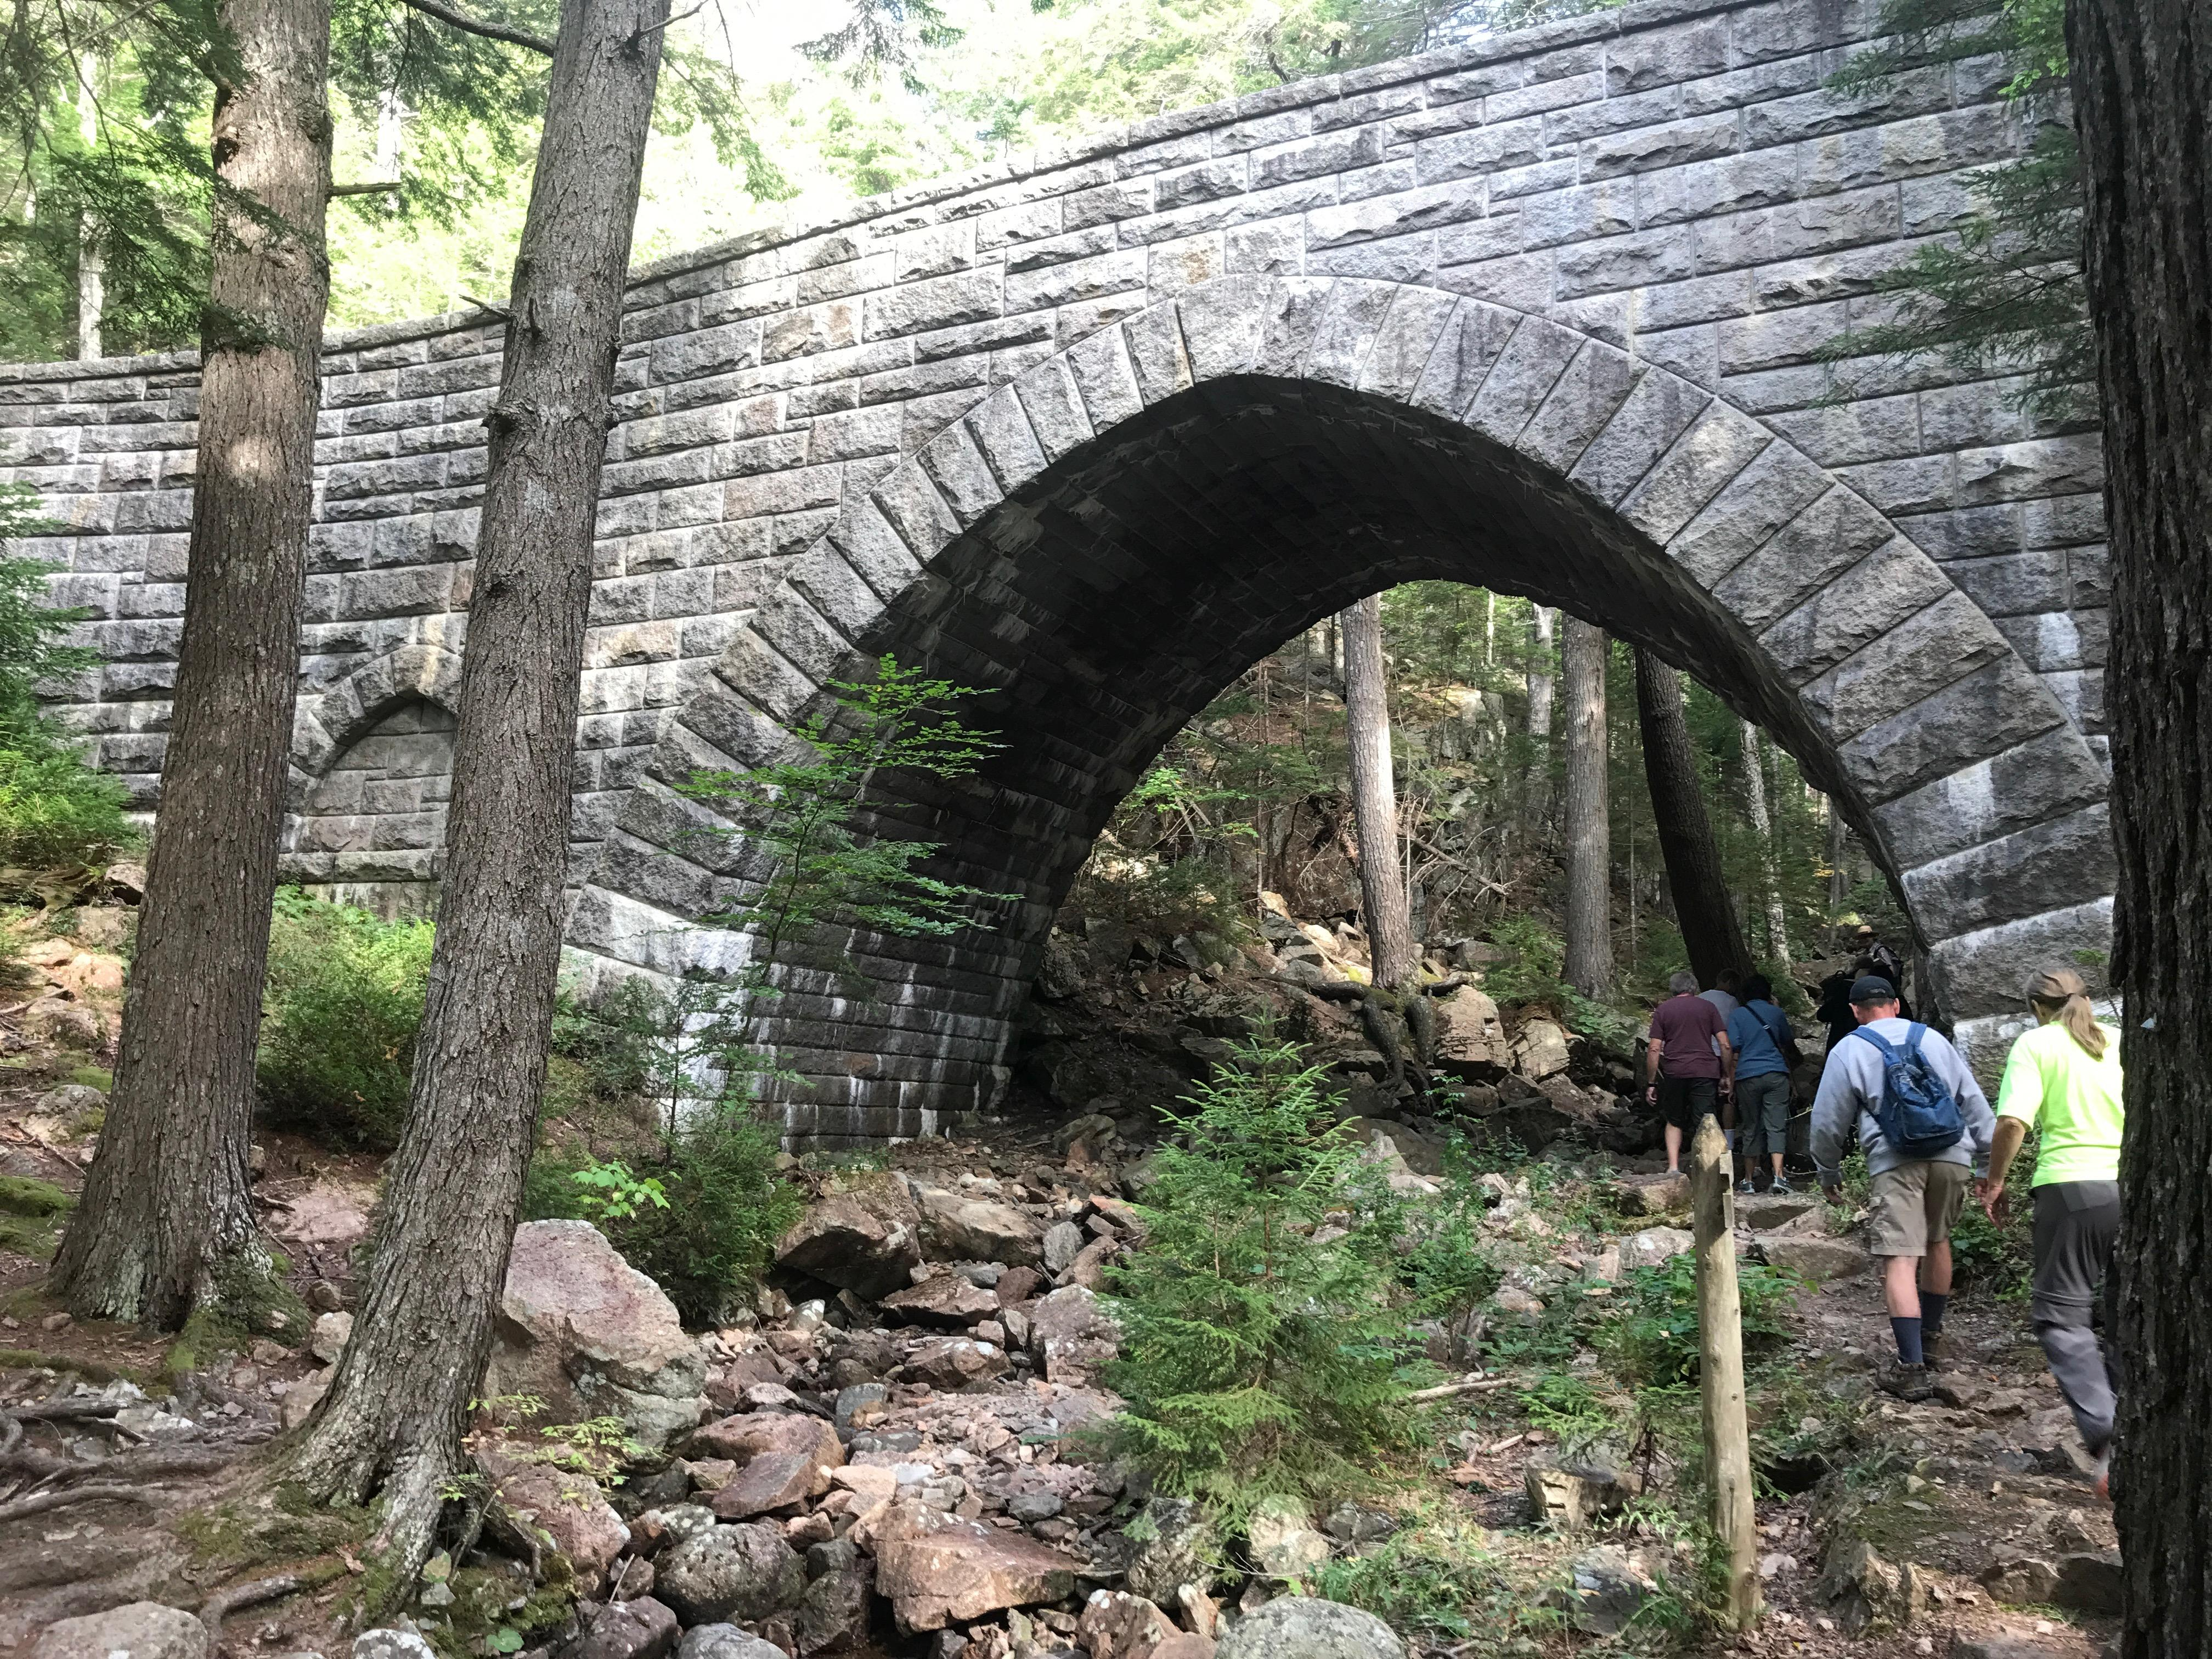 One of 17 bridges built by John D. Rockefeller Jr. in what is now Acadia National Park. [Photo by Rick Holmes]